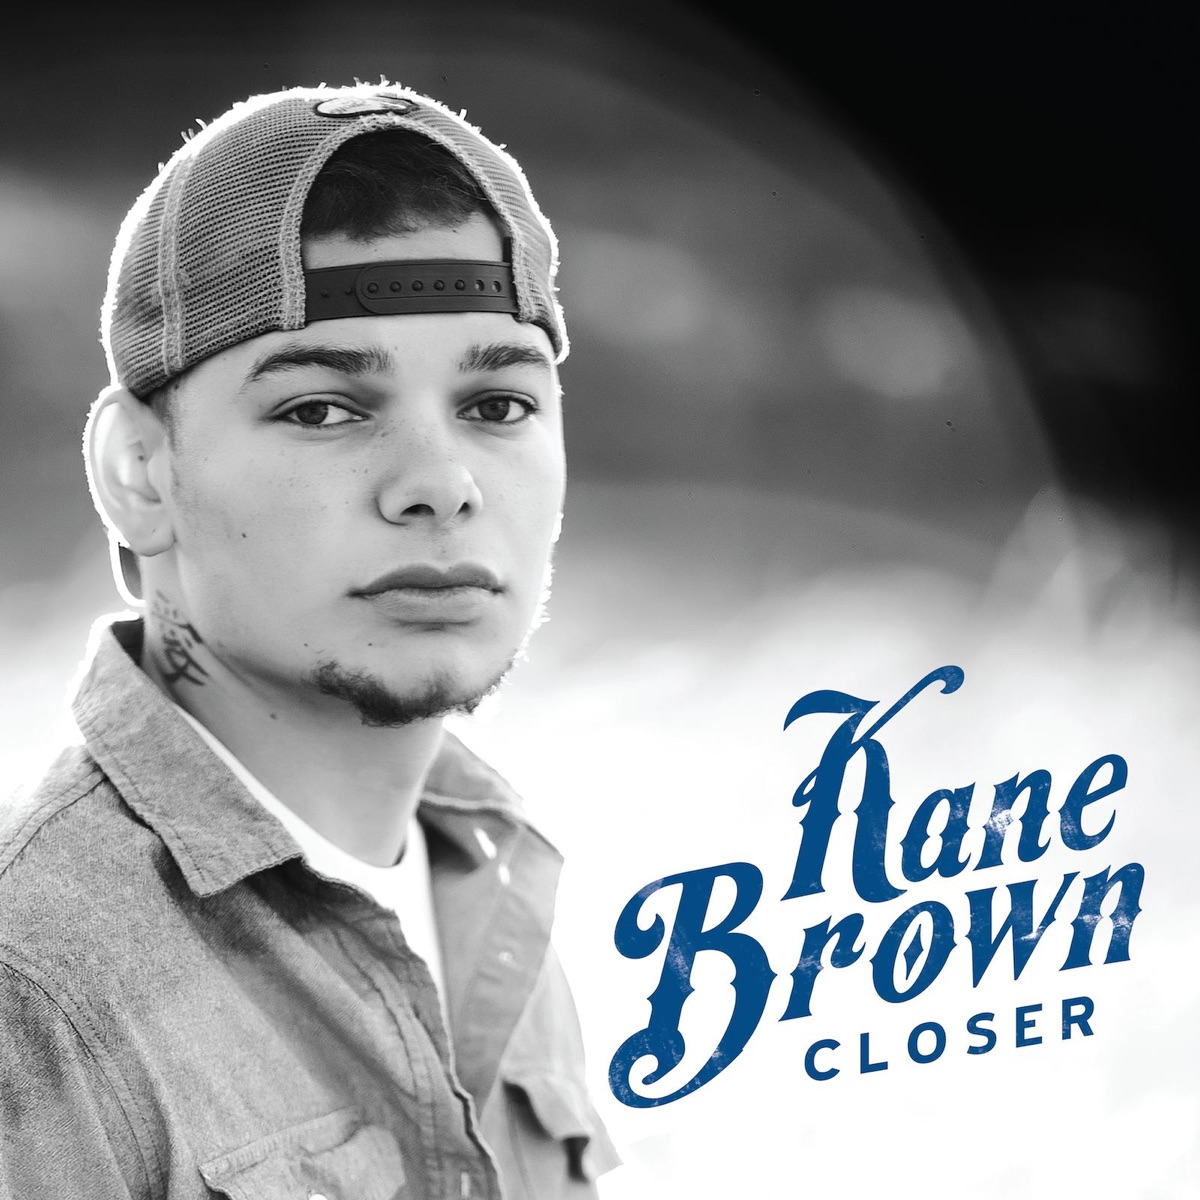 Closer - EP Kane Brown CD cover